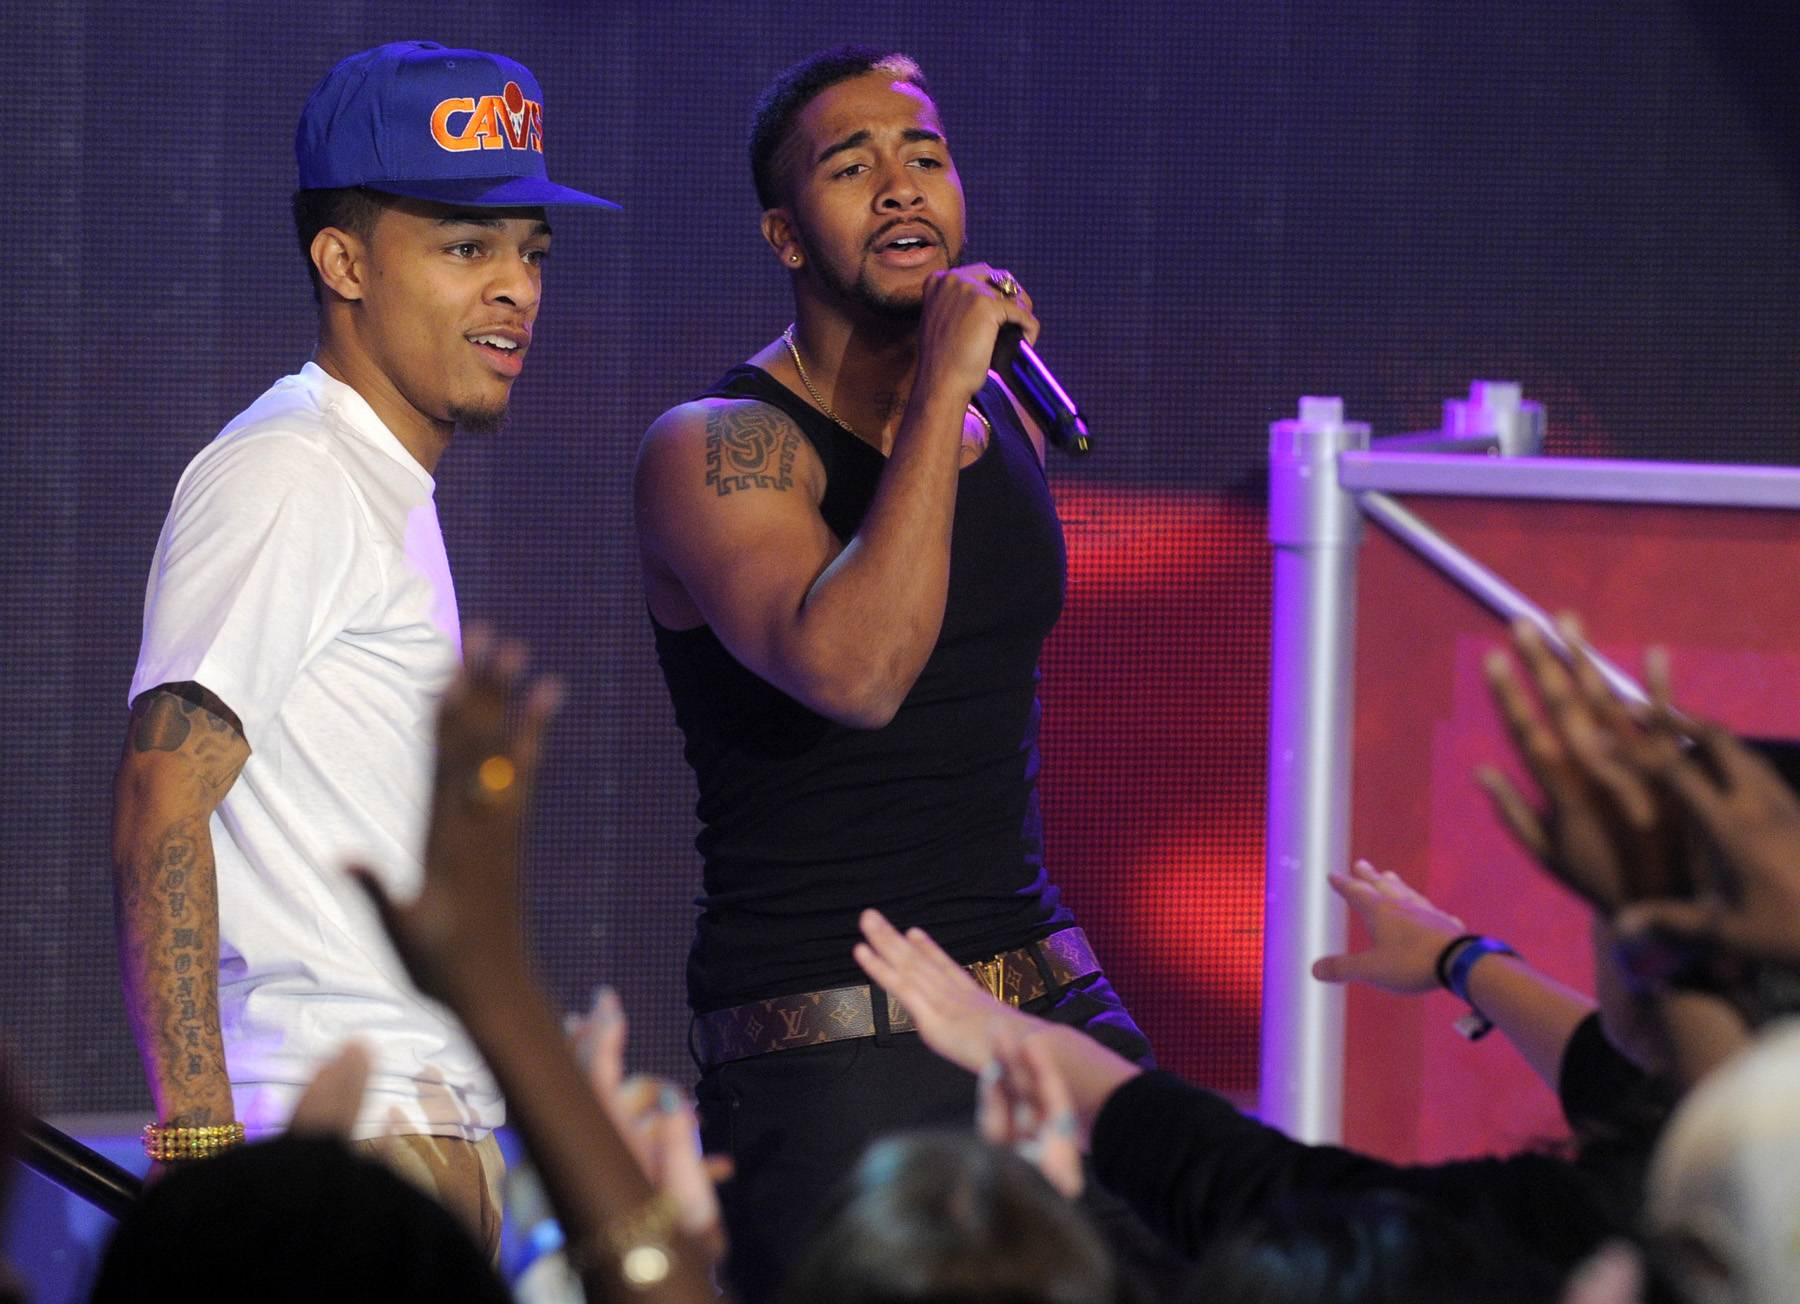 Bow Wow and Omarion Face Off - Rap and R&B have been happily married for years, and Bow Wow and Omarion kept this tradition going on 106 & Park with the release of their joint album Face Off.(Photo: John Ricard / BET)